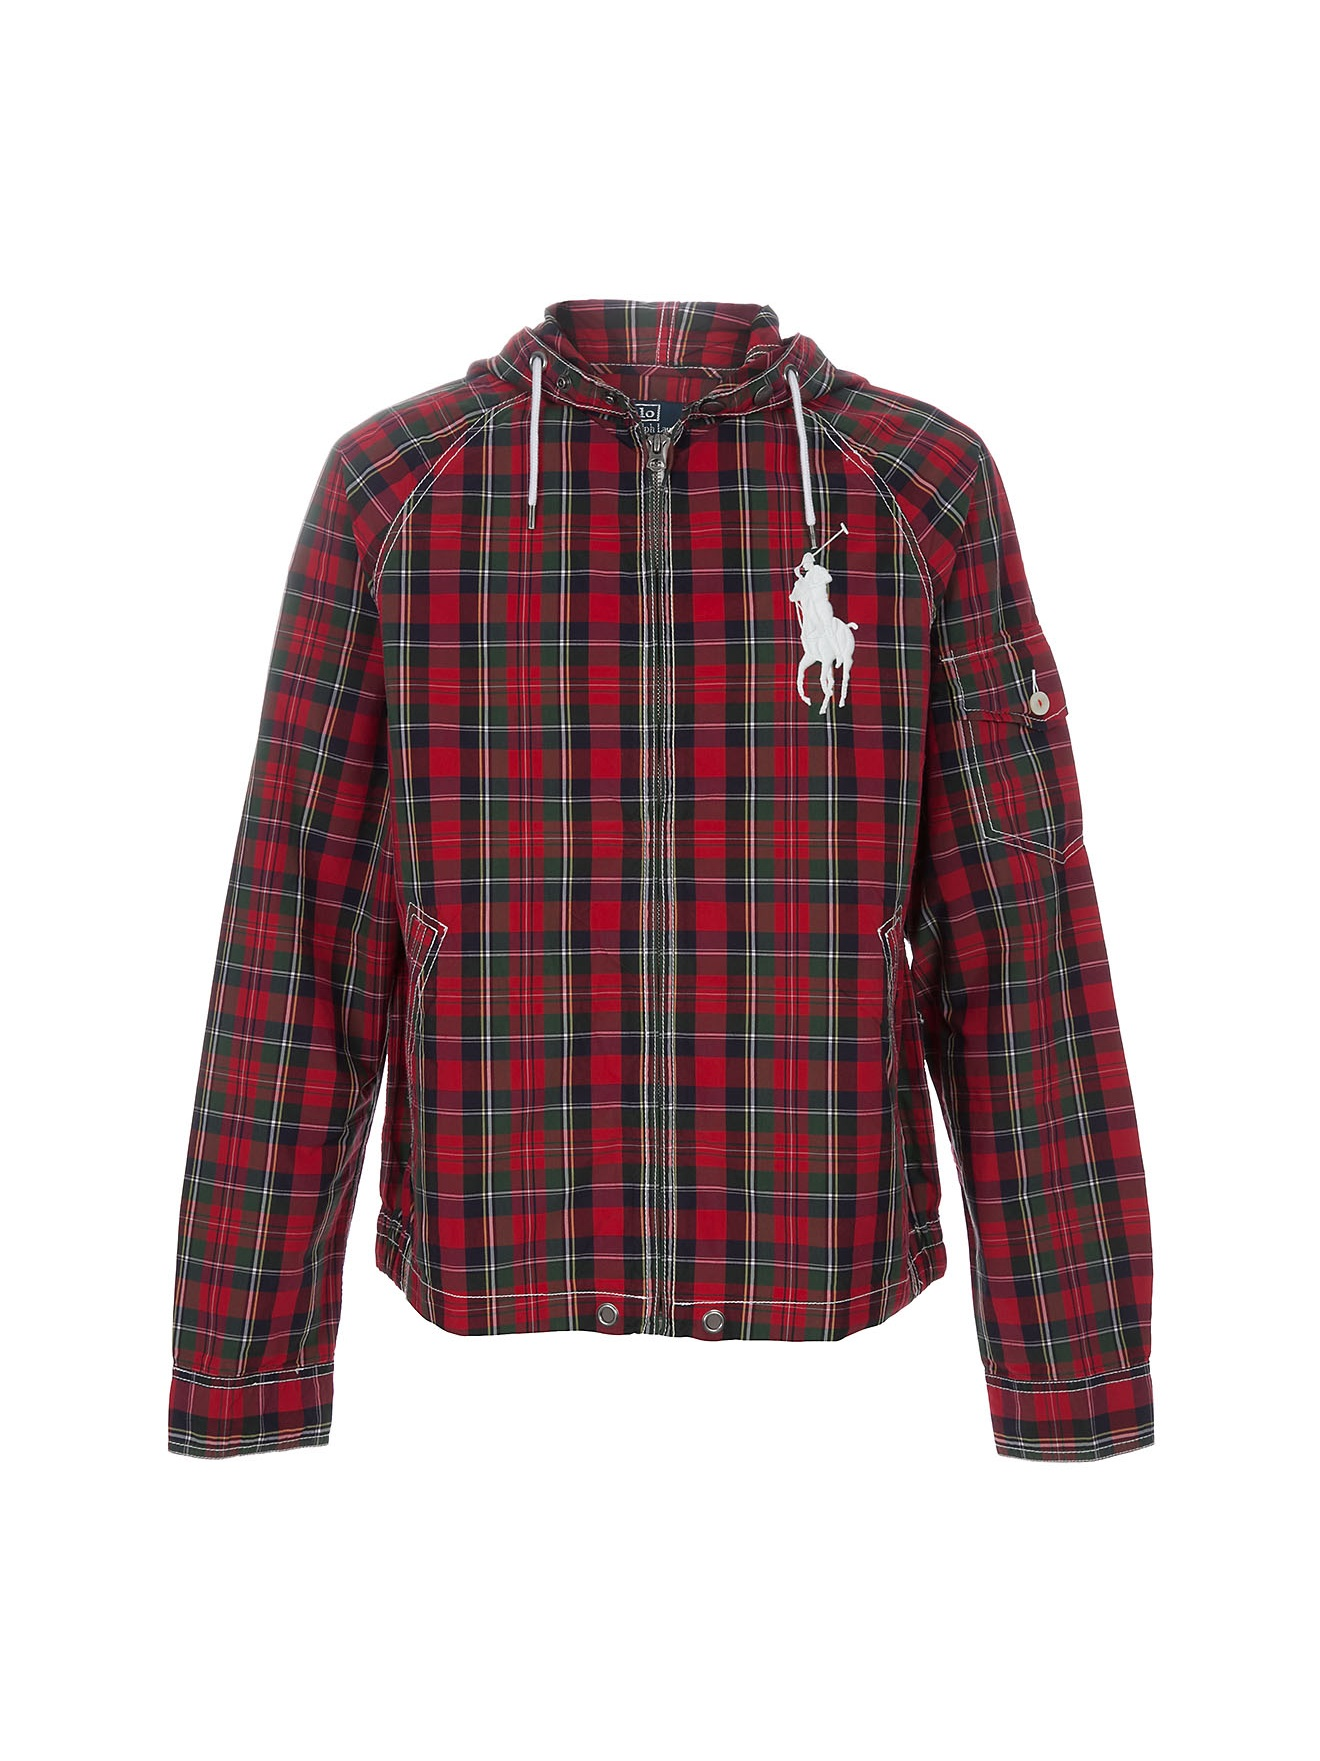 Polo Ralph Lauren Plaid Jacket In Red For Men Lyst